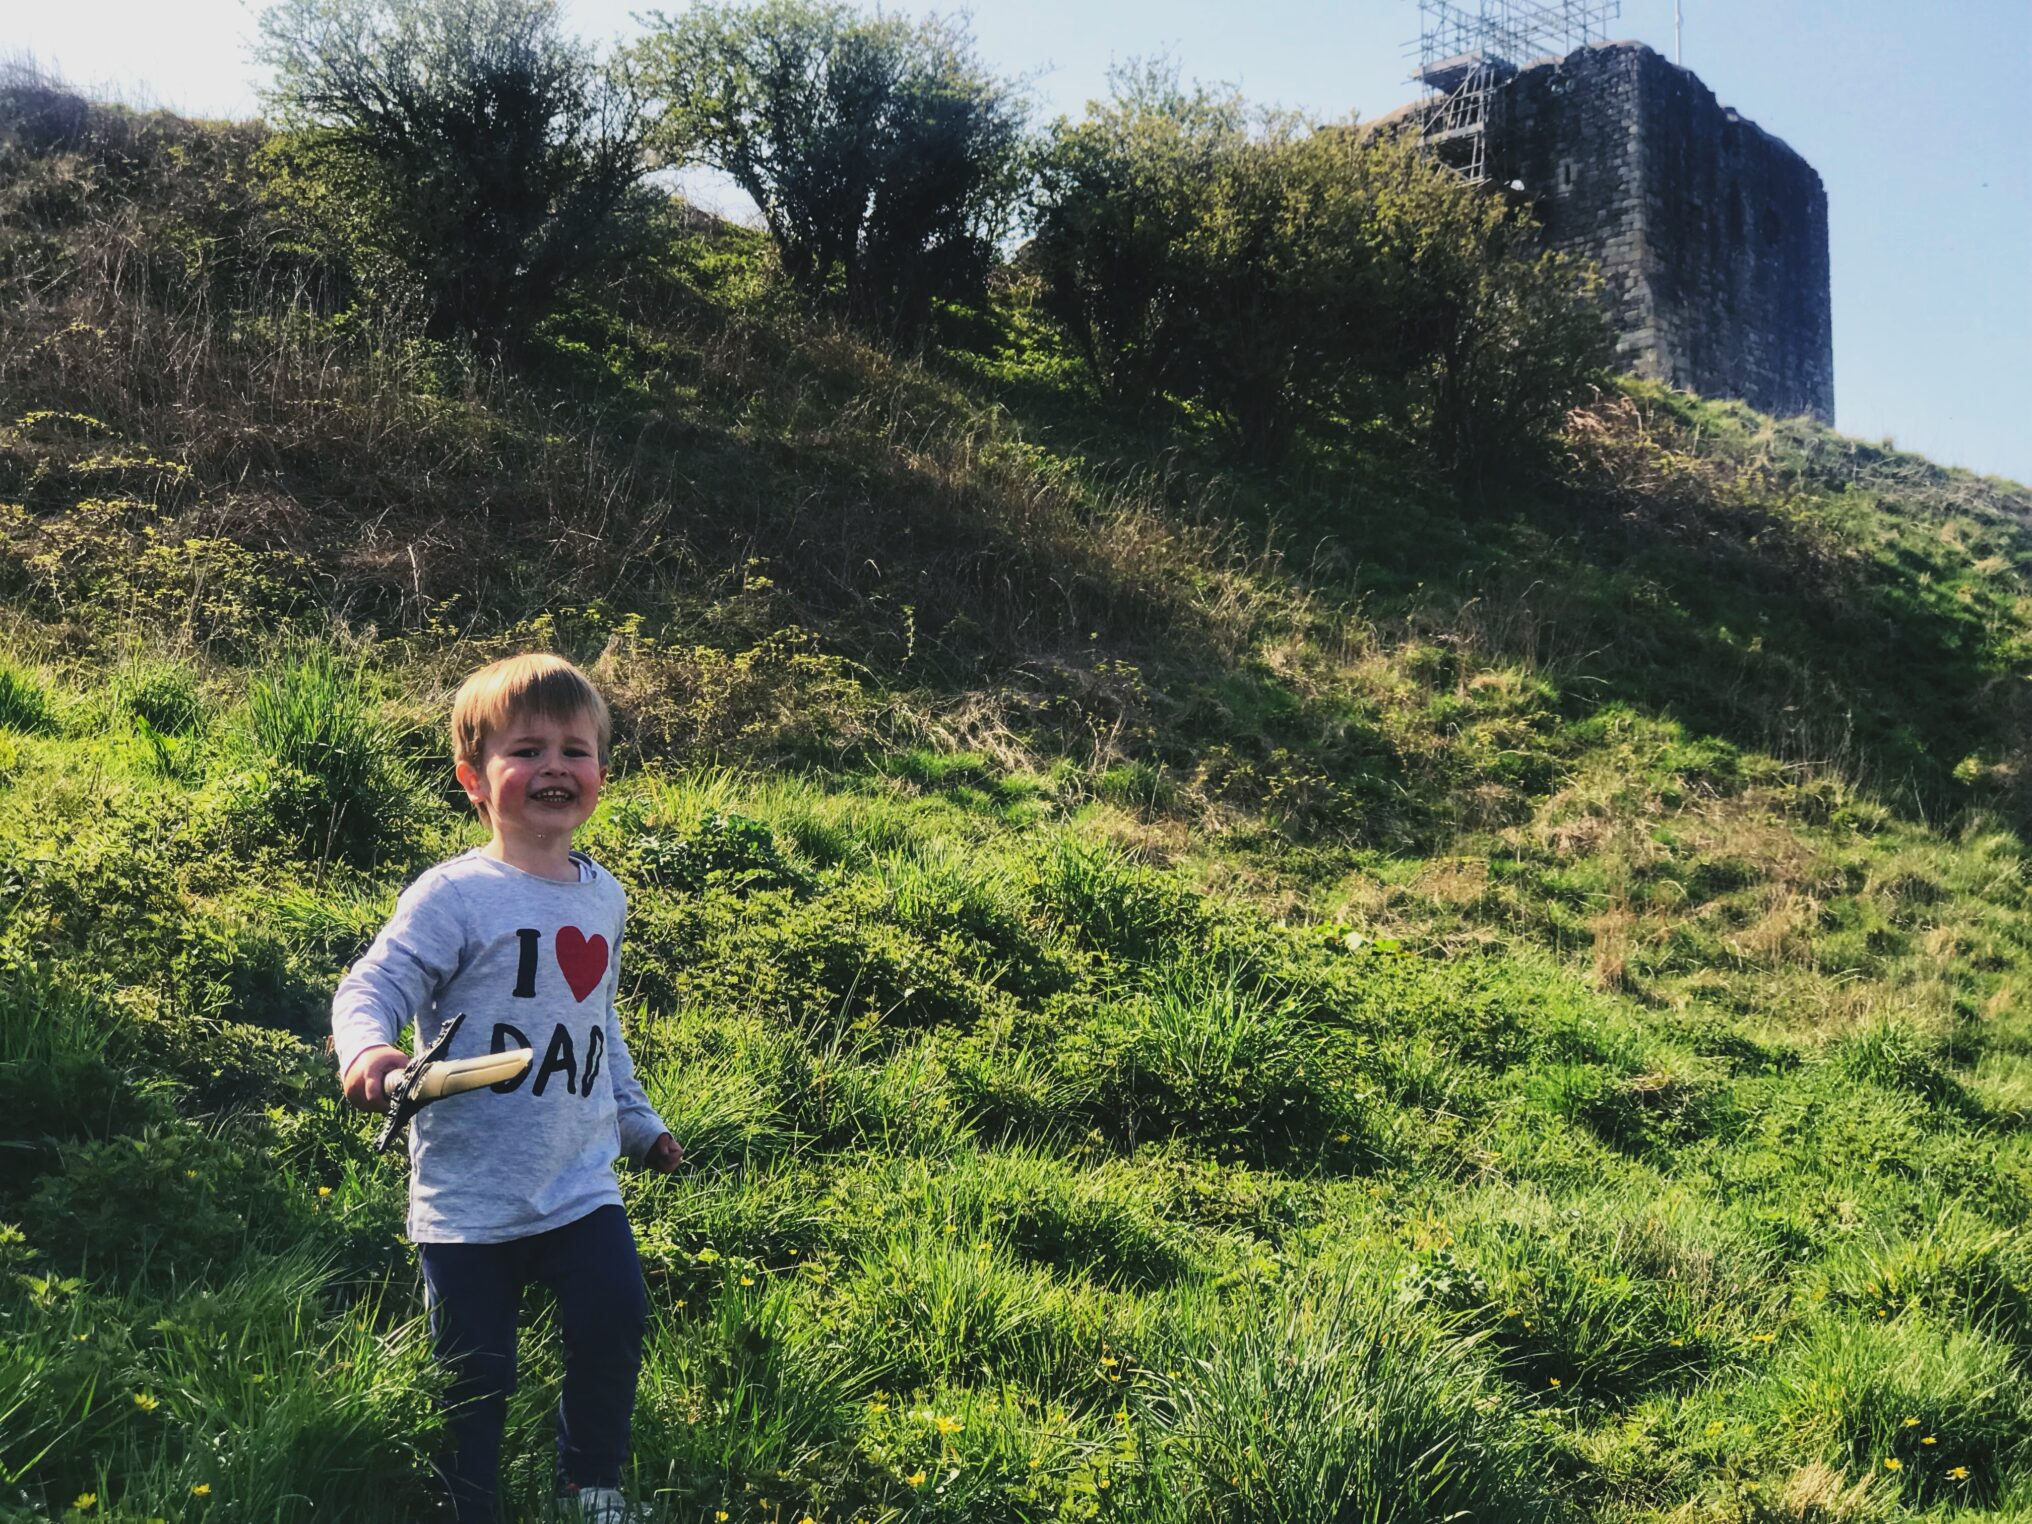 Dexter wearing I heart Dad t-shirt holding a sword on the grass outside Dundonald castle